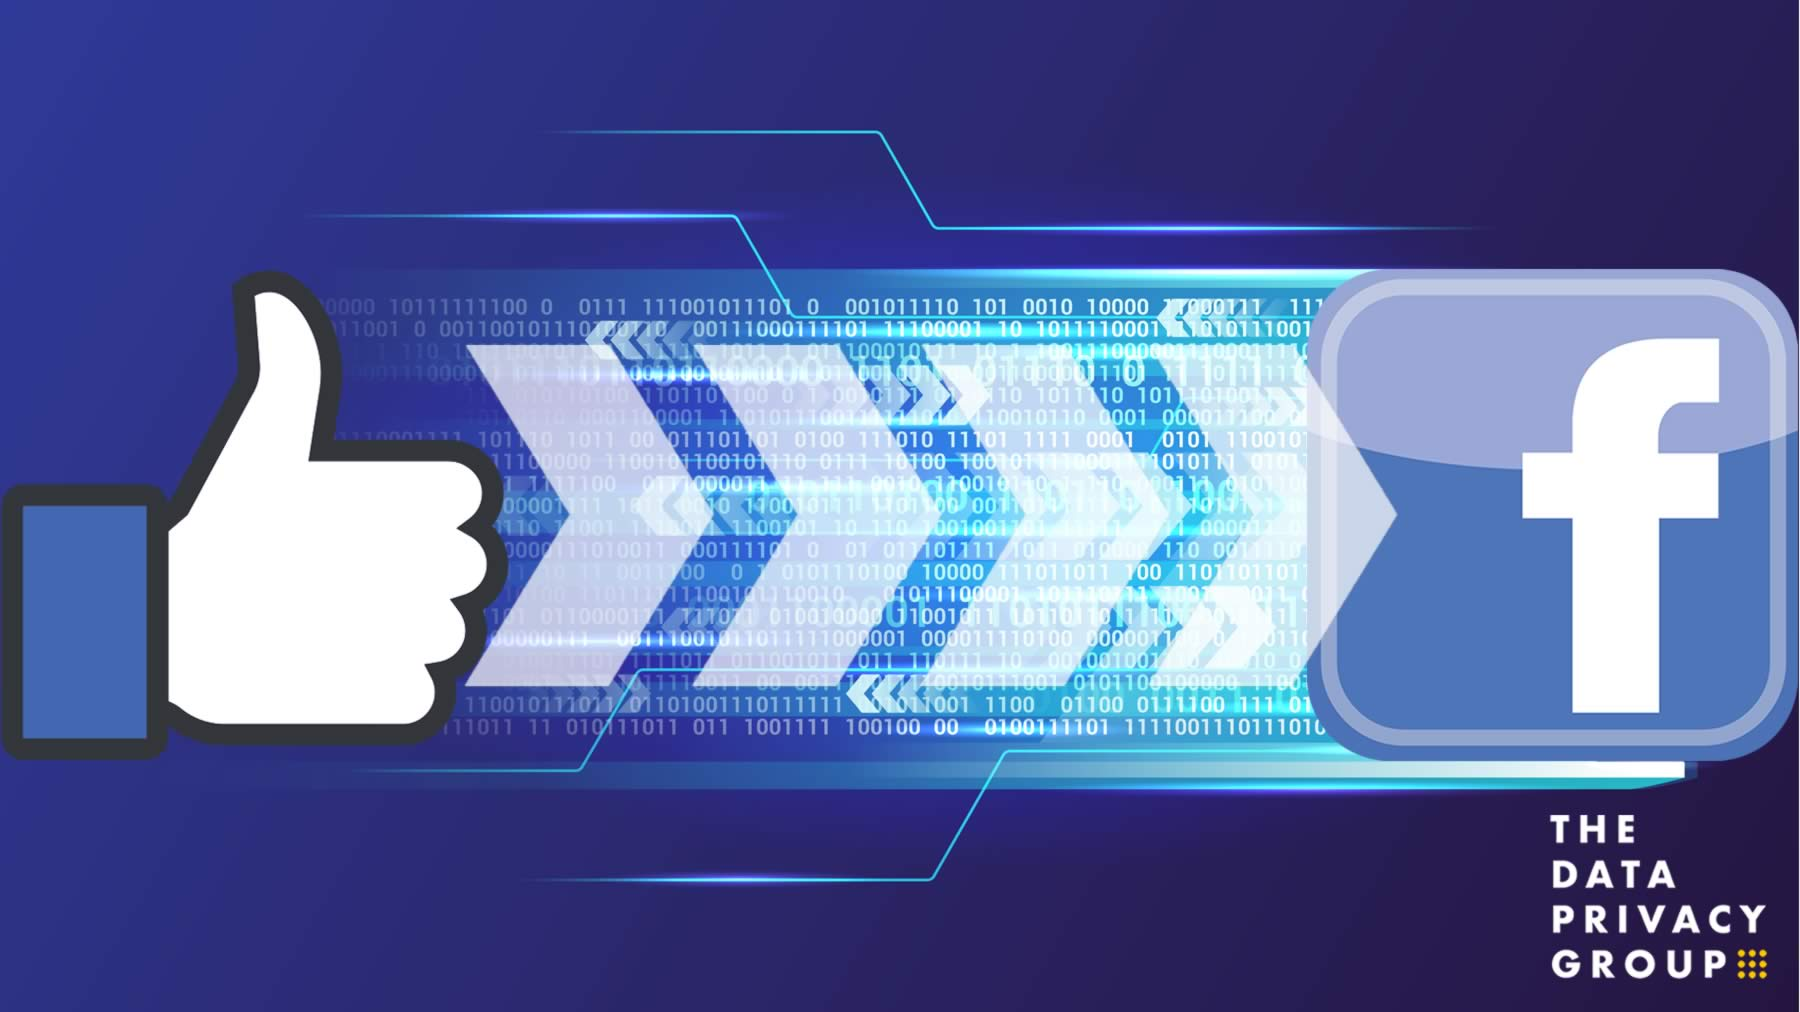 'Like' button transfers personal data to Facebook